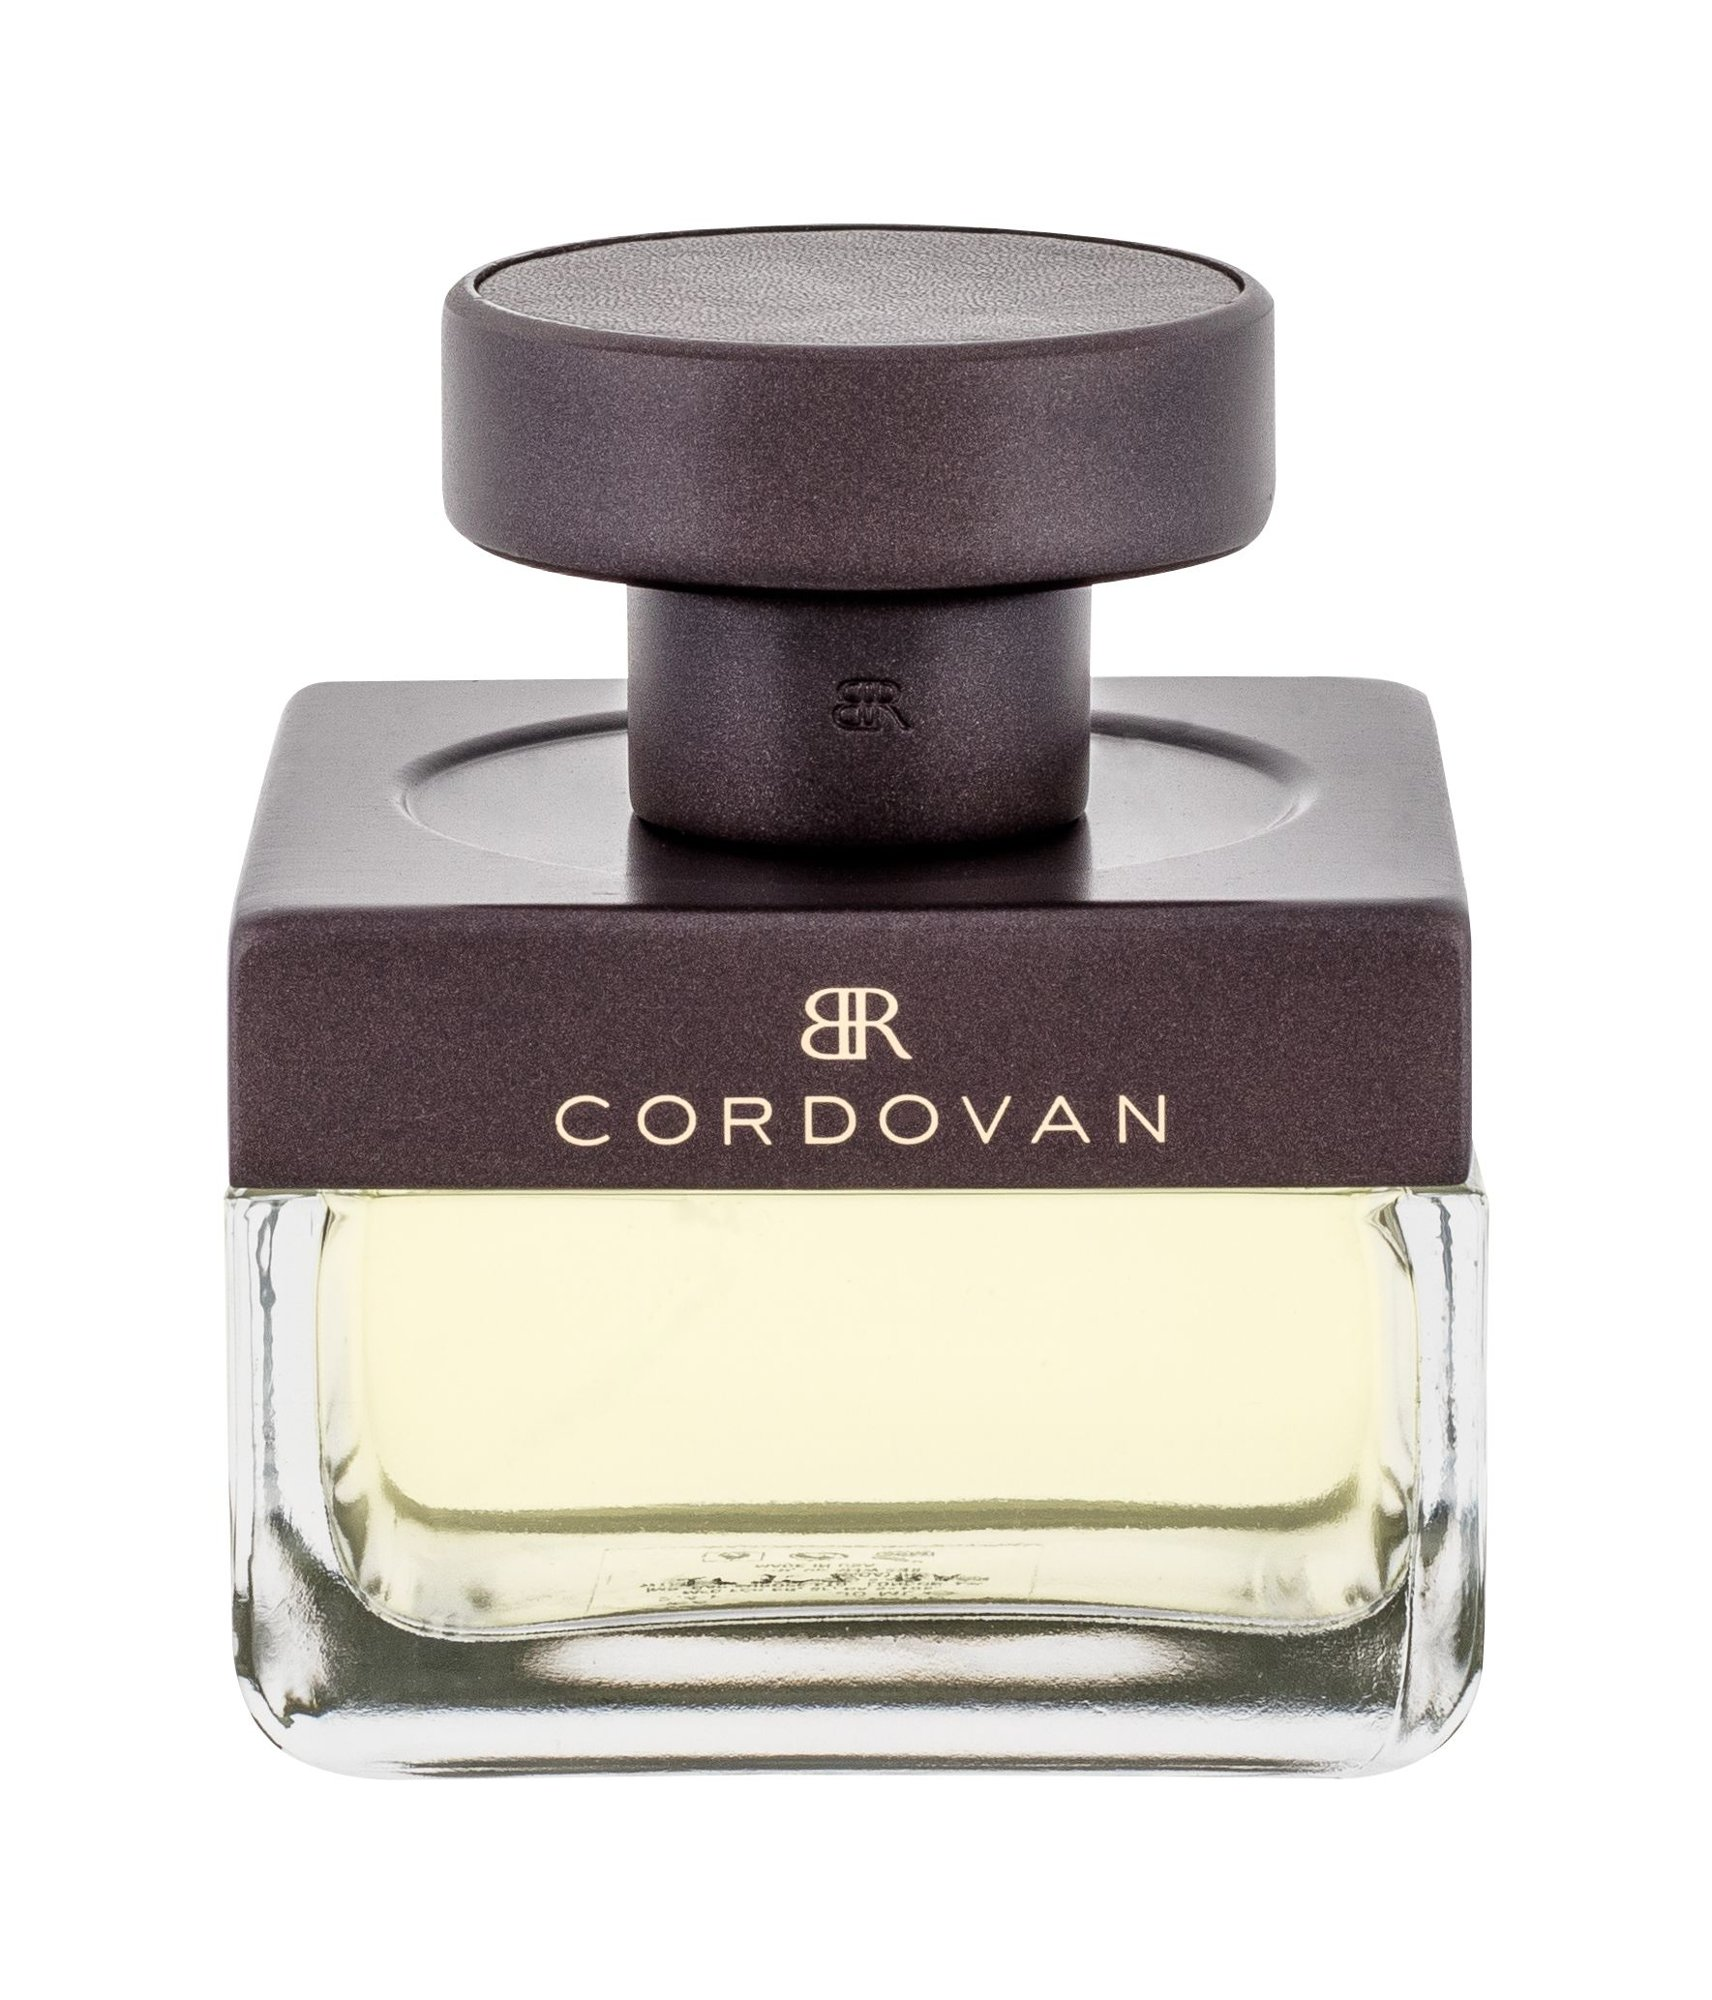 Banana Republic Cordovan Eau de Toilette 100ml